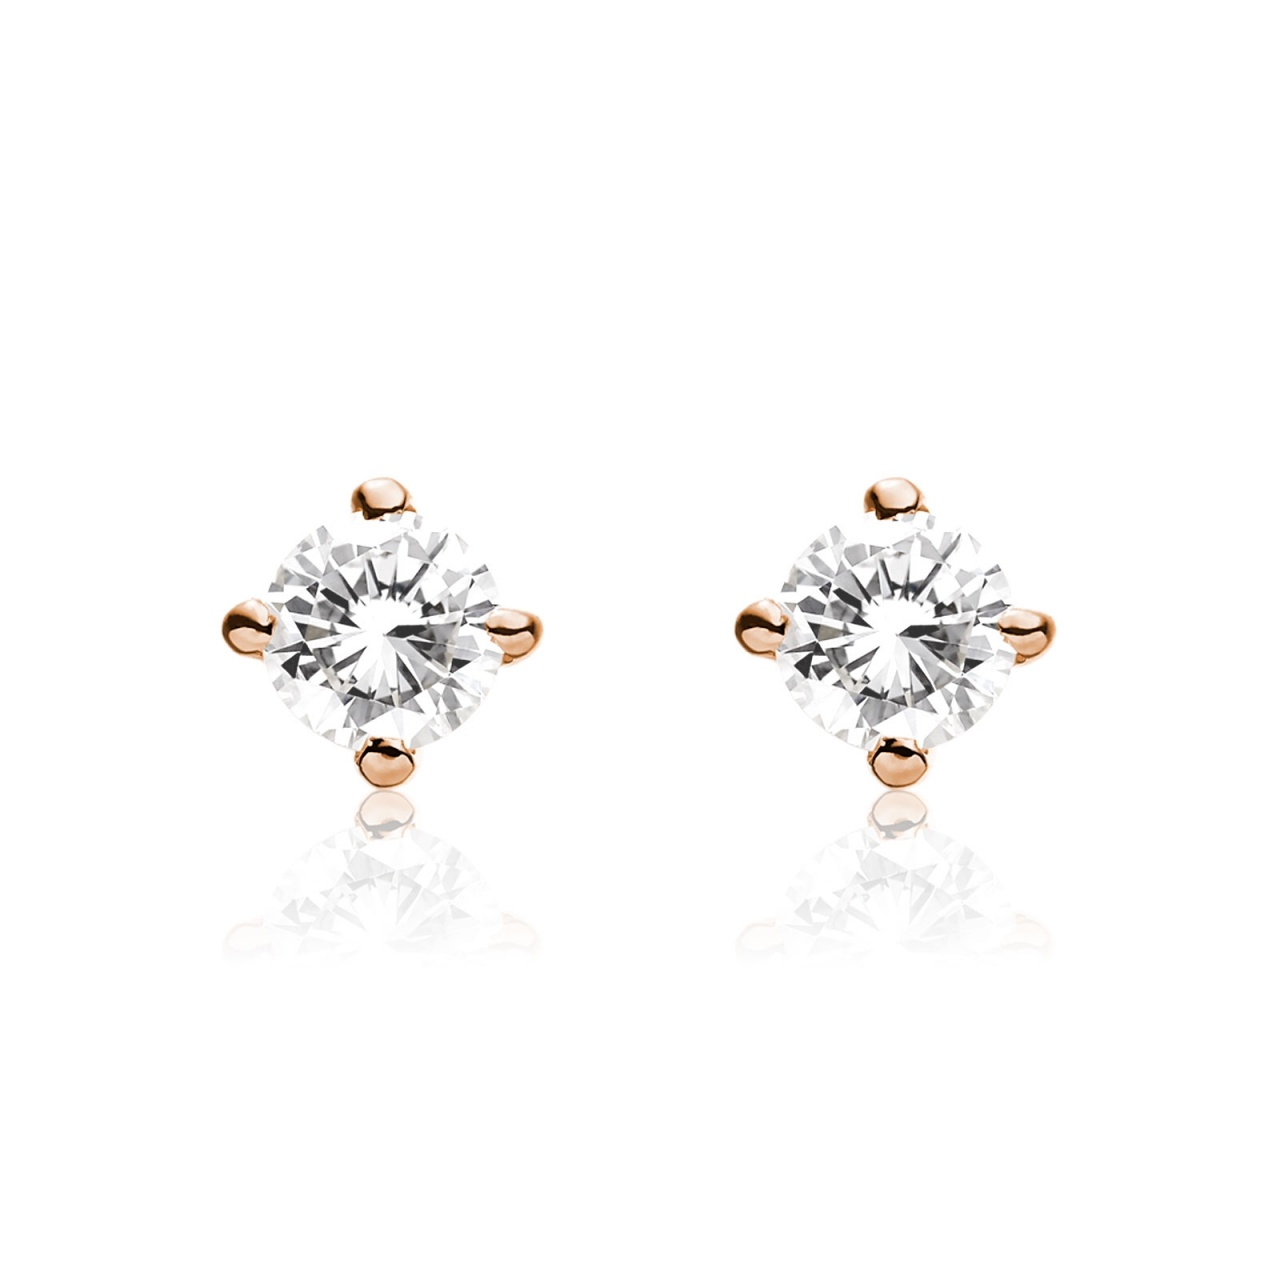 Diamond Studs in Rose Gold with Akoya Pearls-AEWRRG1308-1